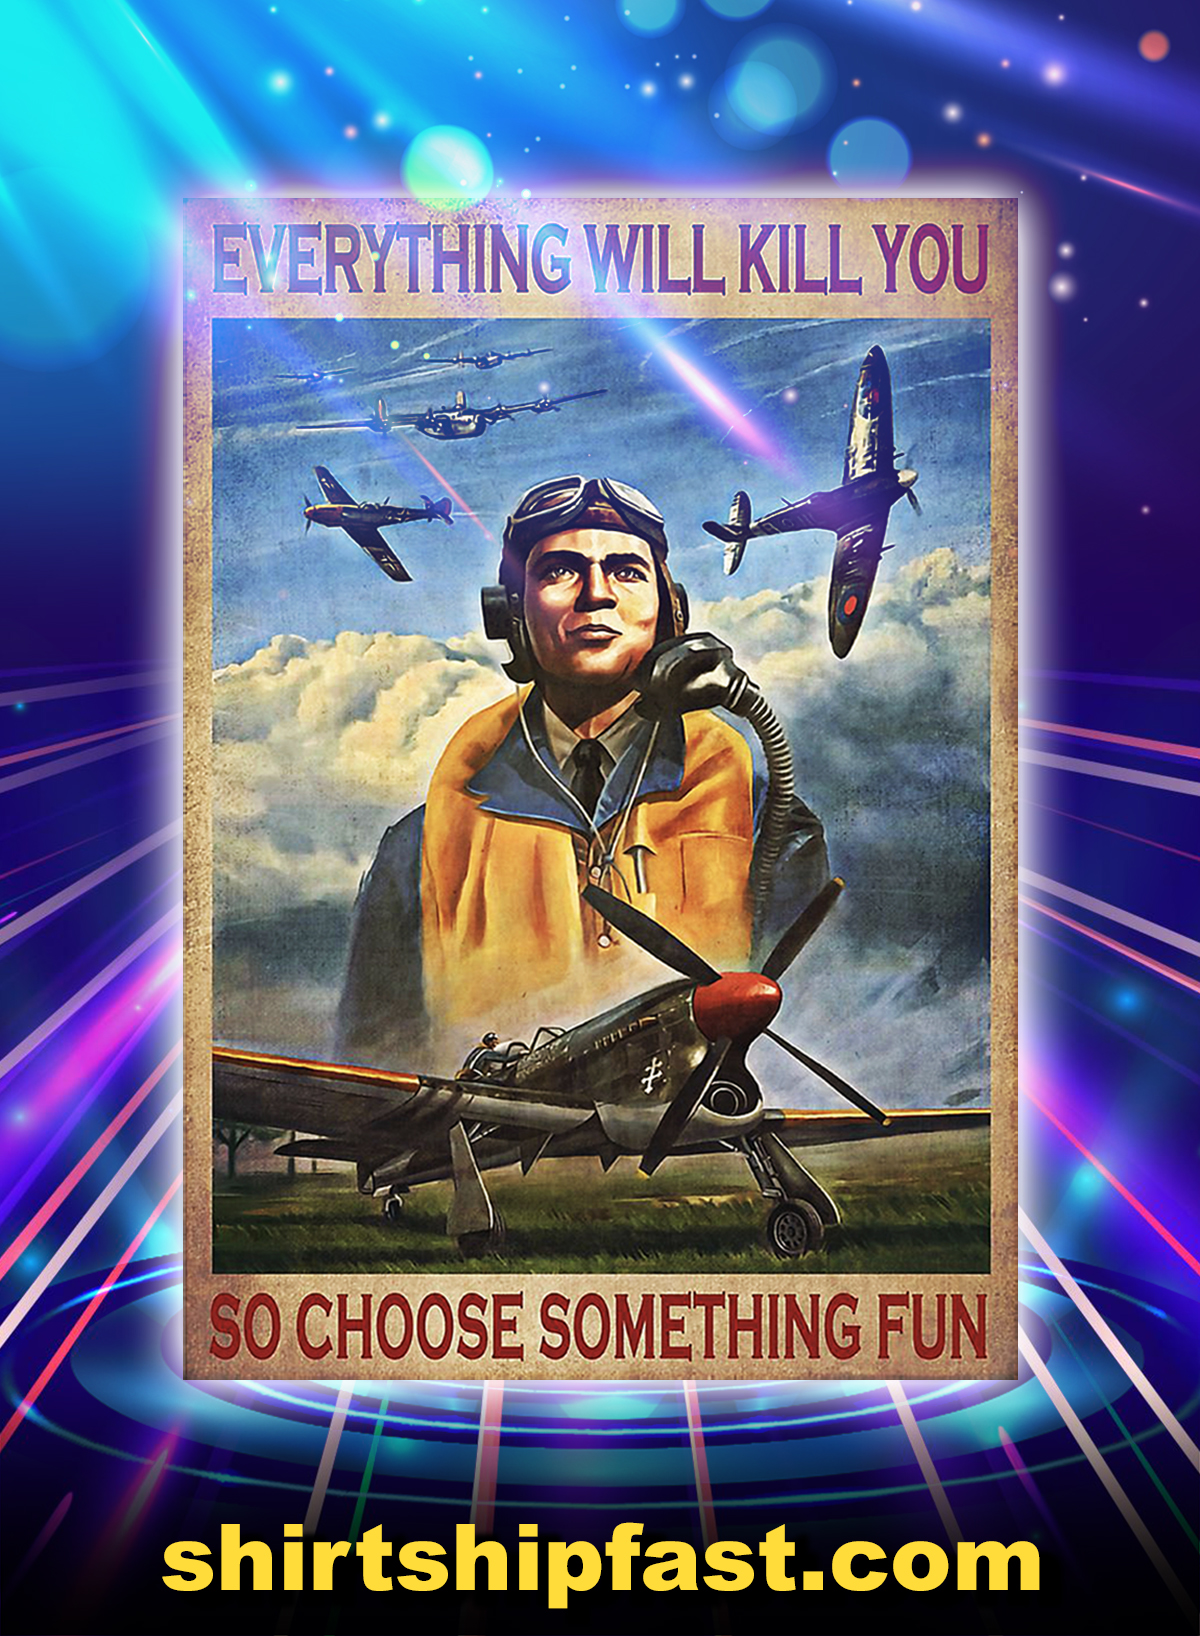 Pilot everything will kill you so choose something fun poster - A1